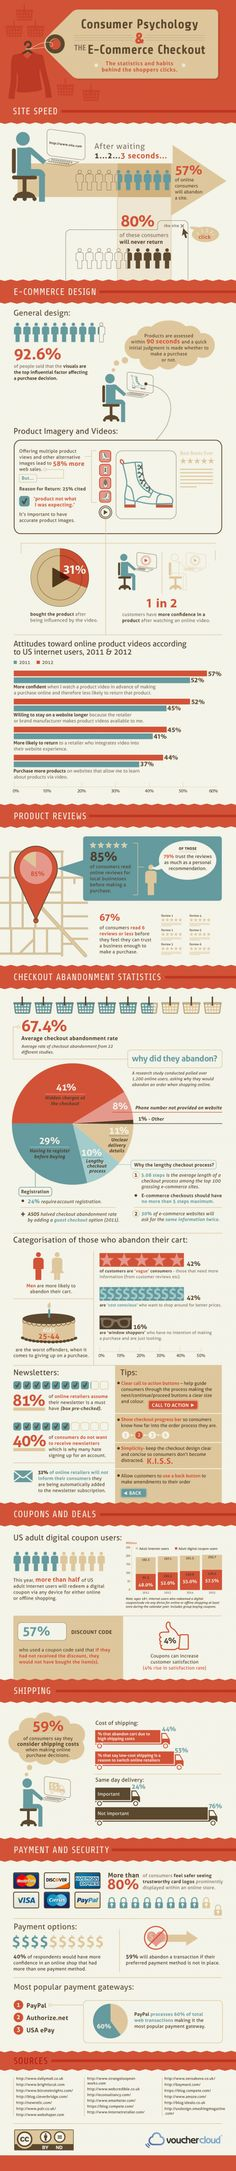 Consumer psychological barriers to online purchase